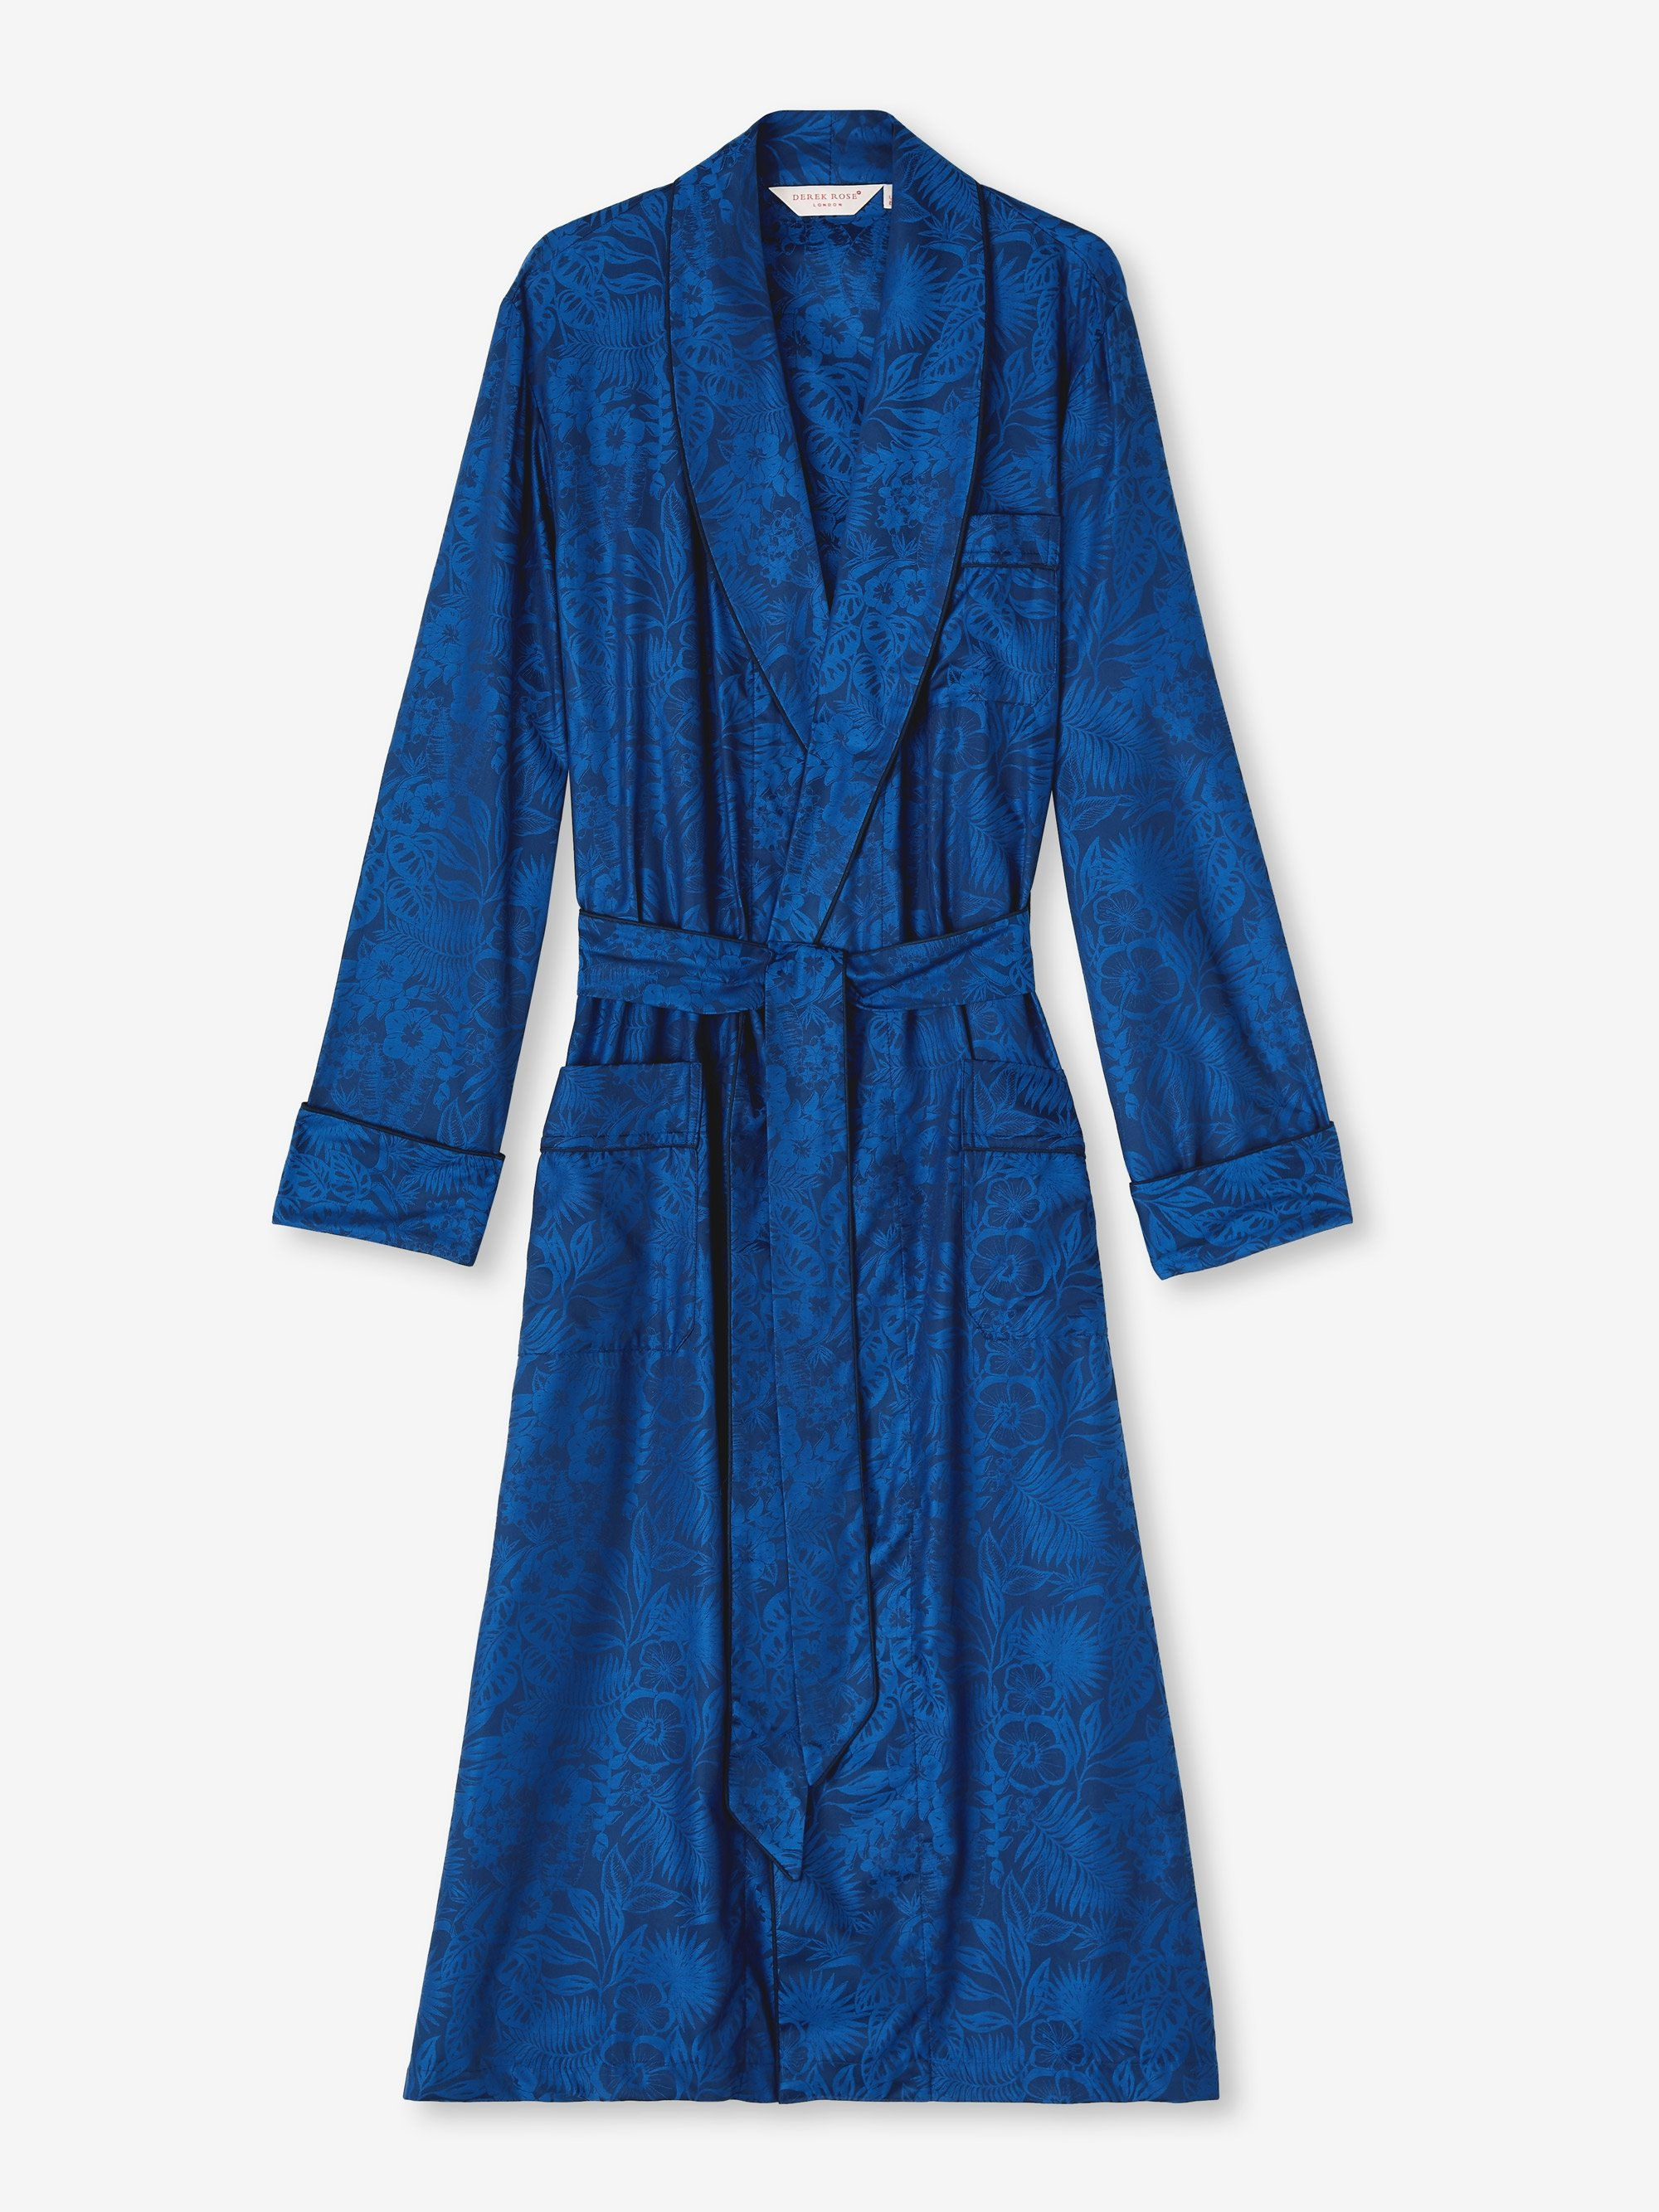 Men's Piped Dressing Gown Paris 19 Cotton Jacquard Navy